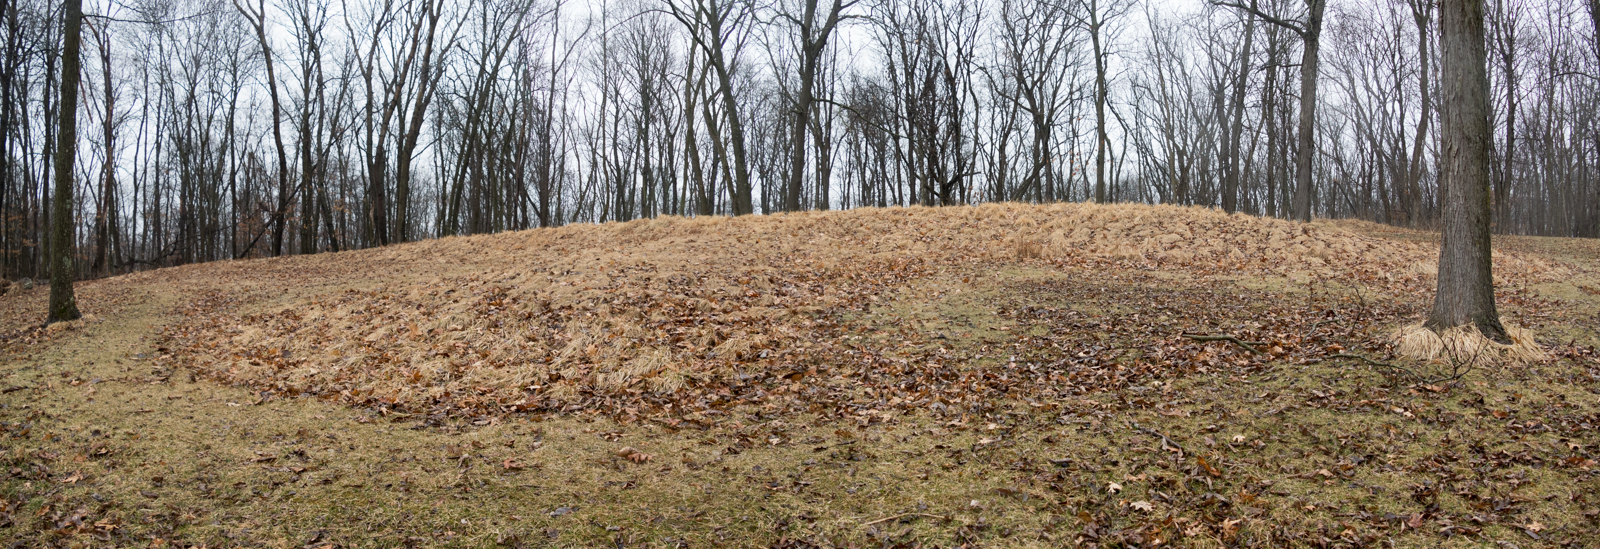 Big Bear Mound in Effigy Mound National Monument in eastern IA